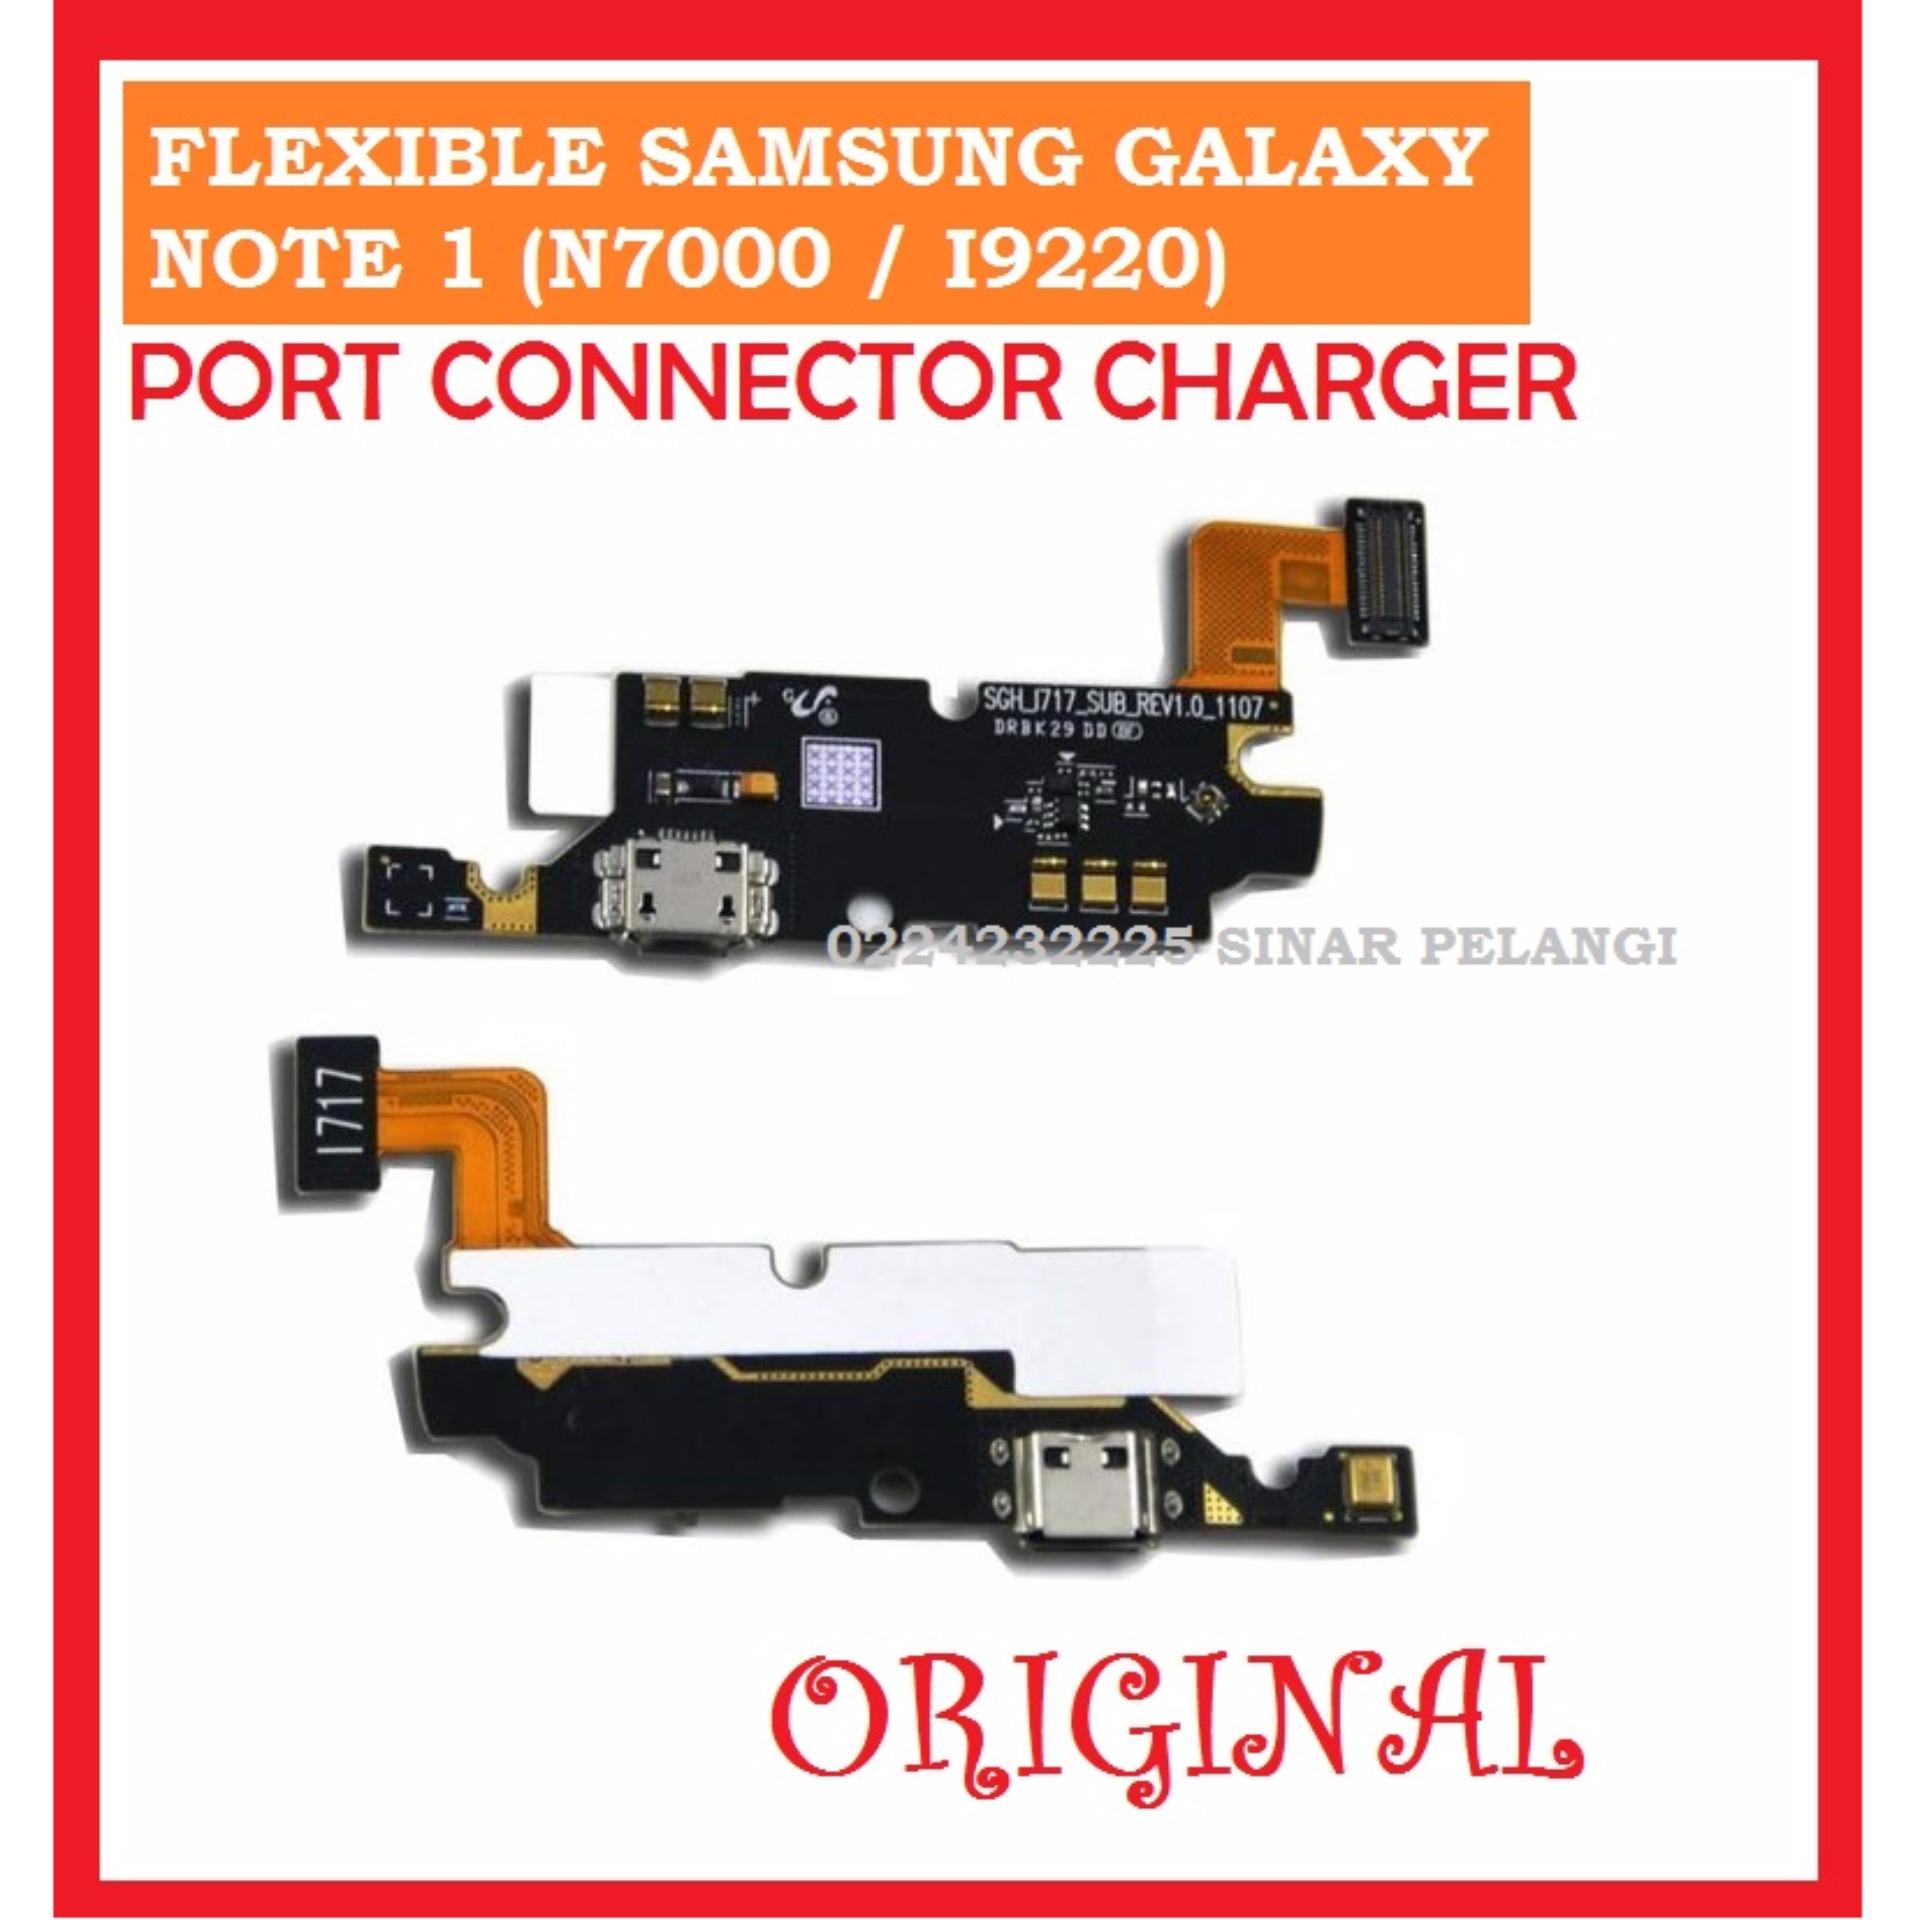 SAMSUNG N7000 NOTE 1 I9220 FLEXI FLEX FLEXIBLE FLEKSIBEL  PORT CONNECTOR KONEKTOR CHARGER ORI ORIGINAL 702125